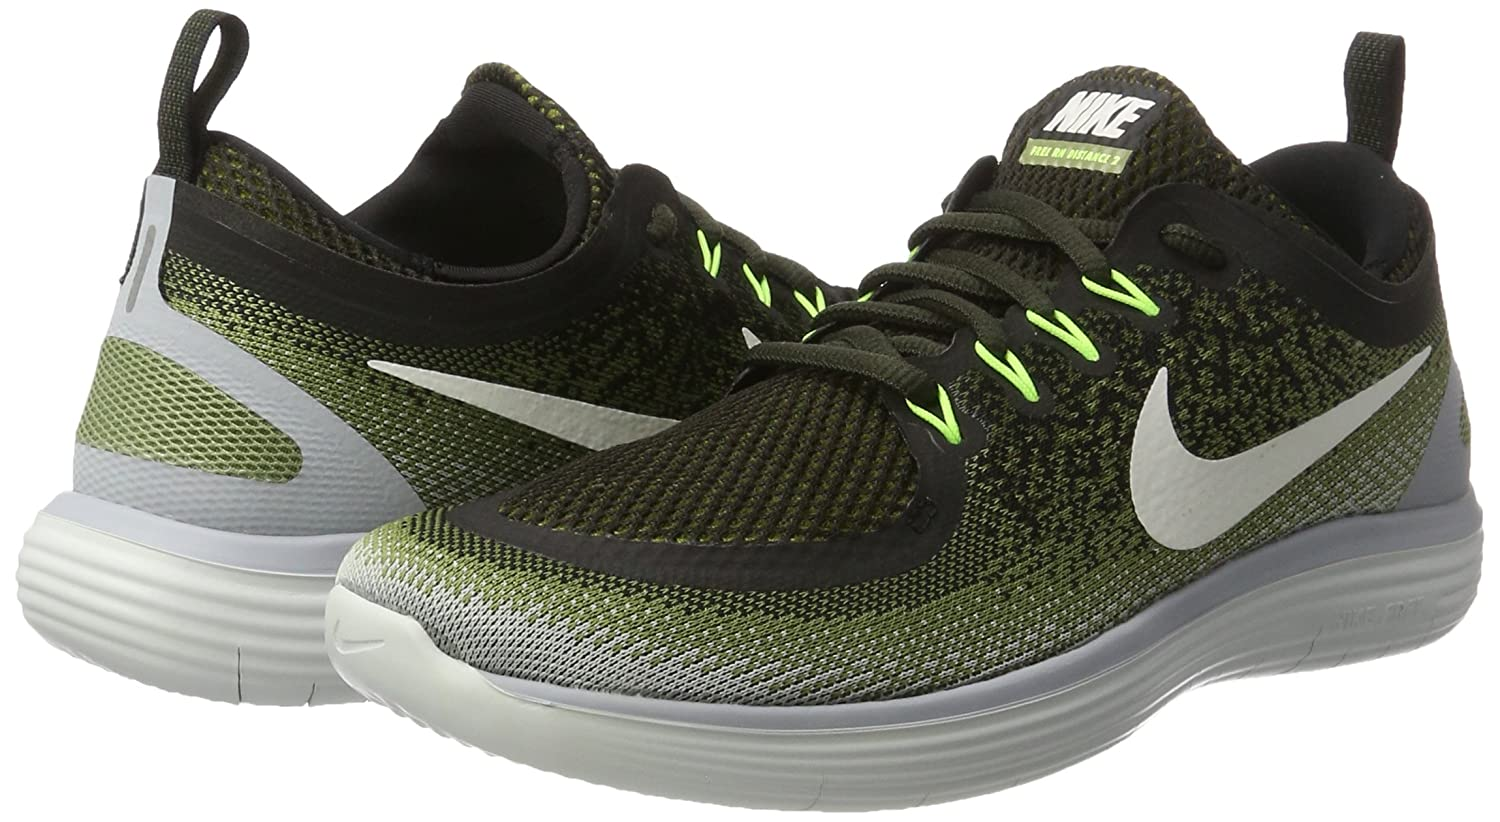 NIKE Men's Free RN Distance 2 Running Shoe B01N4VPCUY 13 D(M) US|Legion Green / White - Palm Green